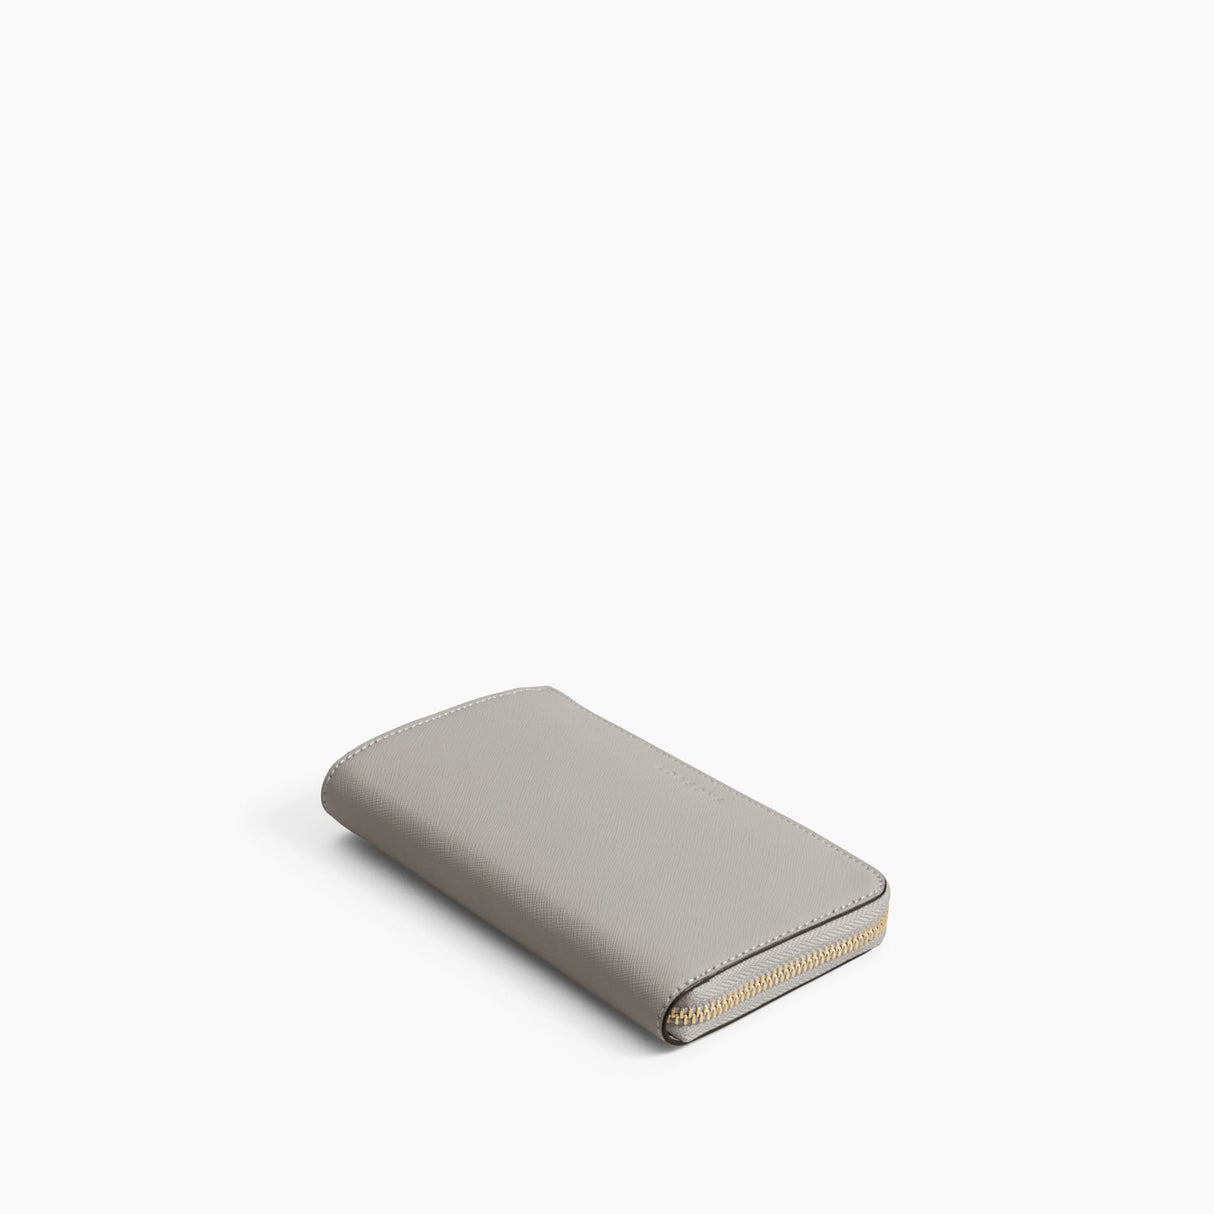 Front - The Leather Wallet - Saffiano Leather - Light Grey / Gold / Grey - Small Accessory - Lo & Sons